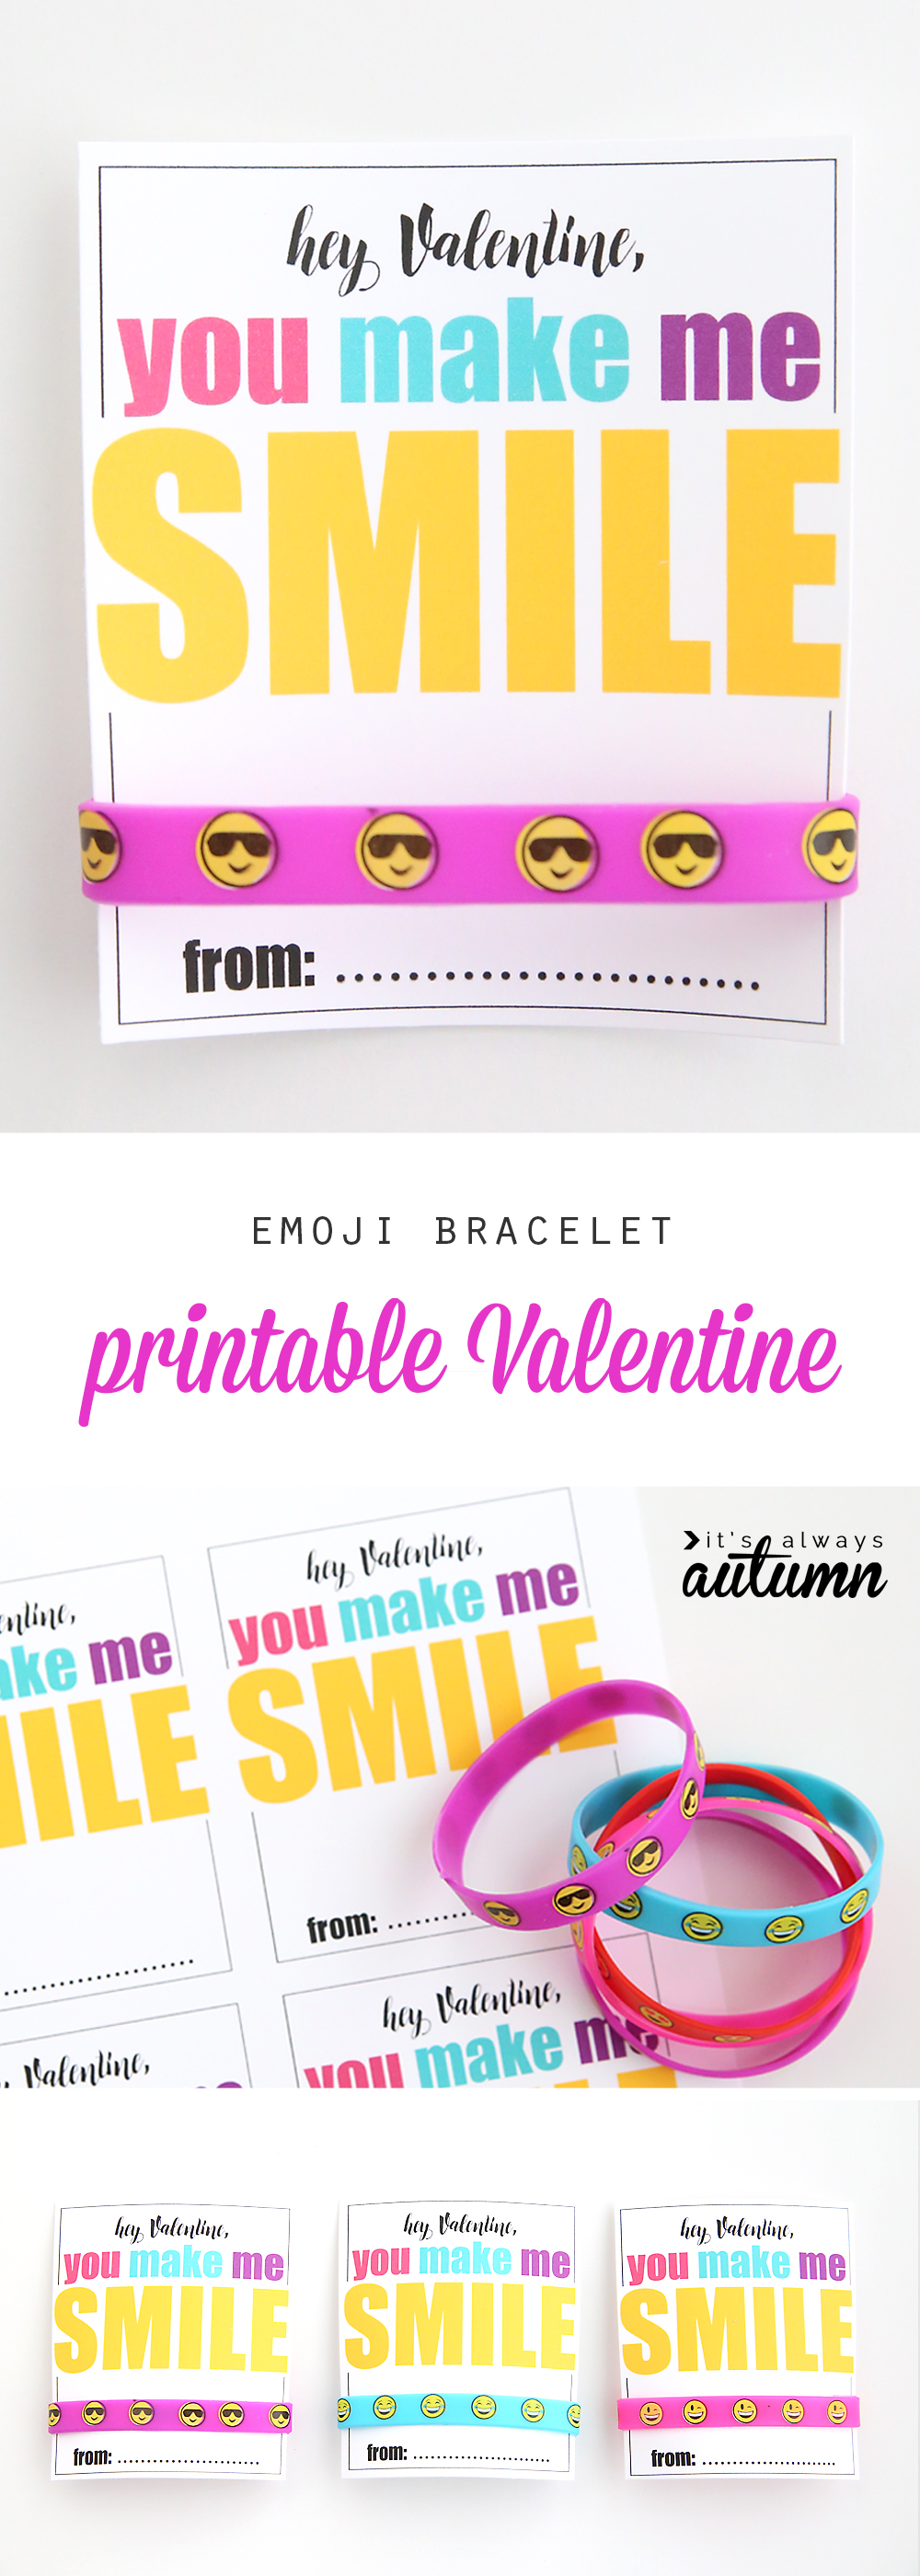 Valentine\'s card that says Hey Valentine, you make me smile, with a bracelet that has emojis on it